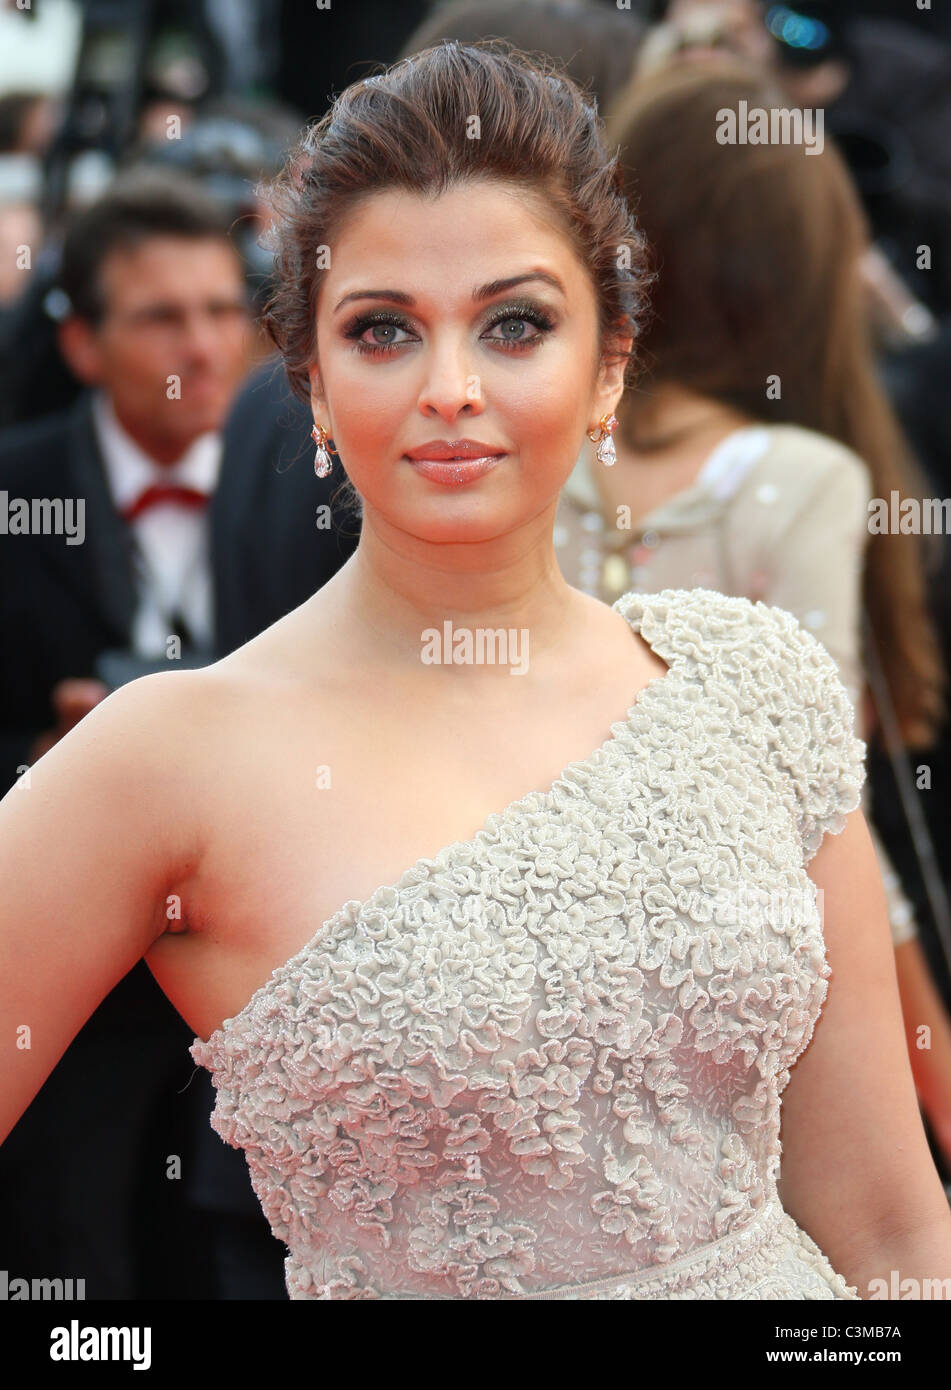 Aishwarya rai 11 advise to wear for everyday in 2019